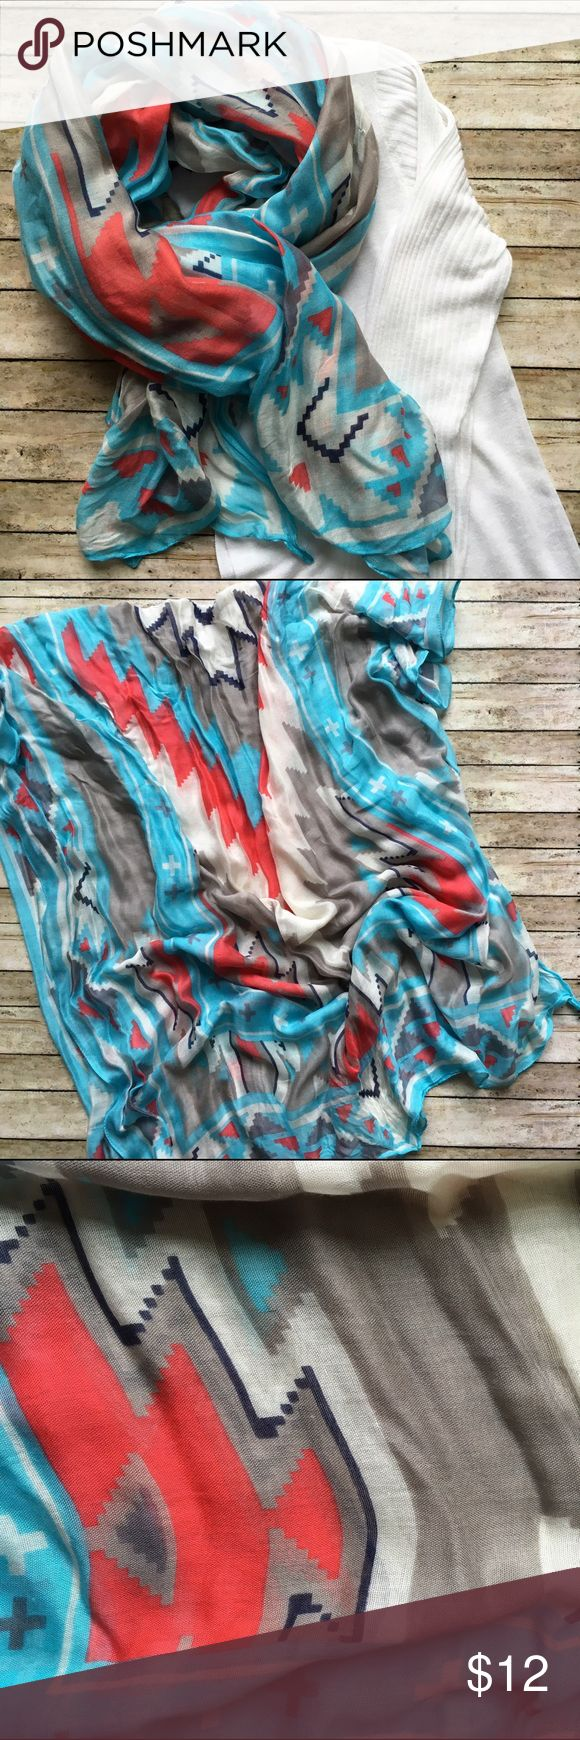 Boutique Scarf Boutique Red, Navy, Light Blue, & White Southwestern Print Scarf. EUC. WILLI Smith Waterfall Cardigan also for sale. For info see listing in my closet. BUNDLE & SAVE! Boutique Accessories Scarves & Wraps